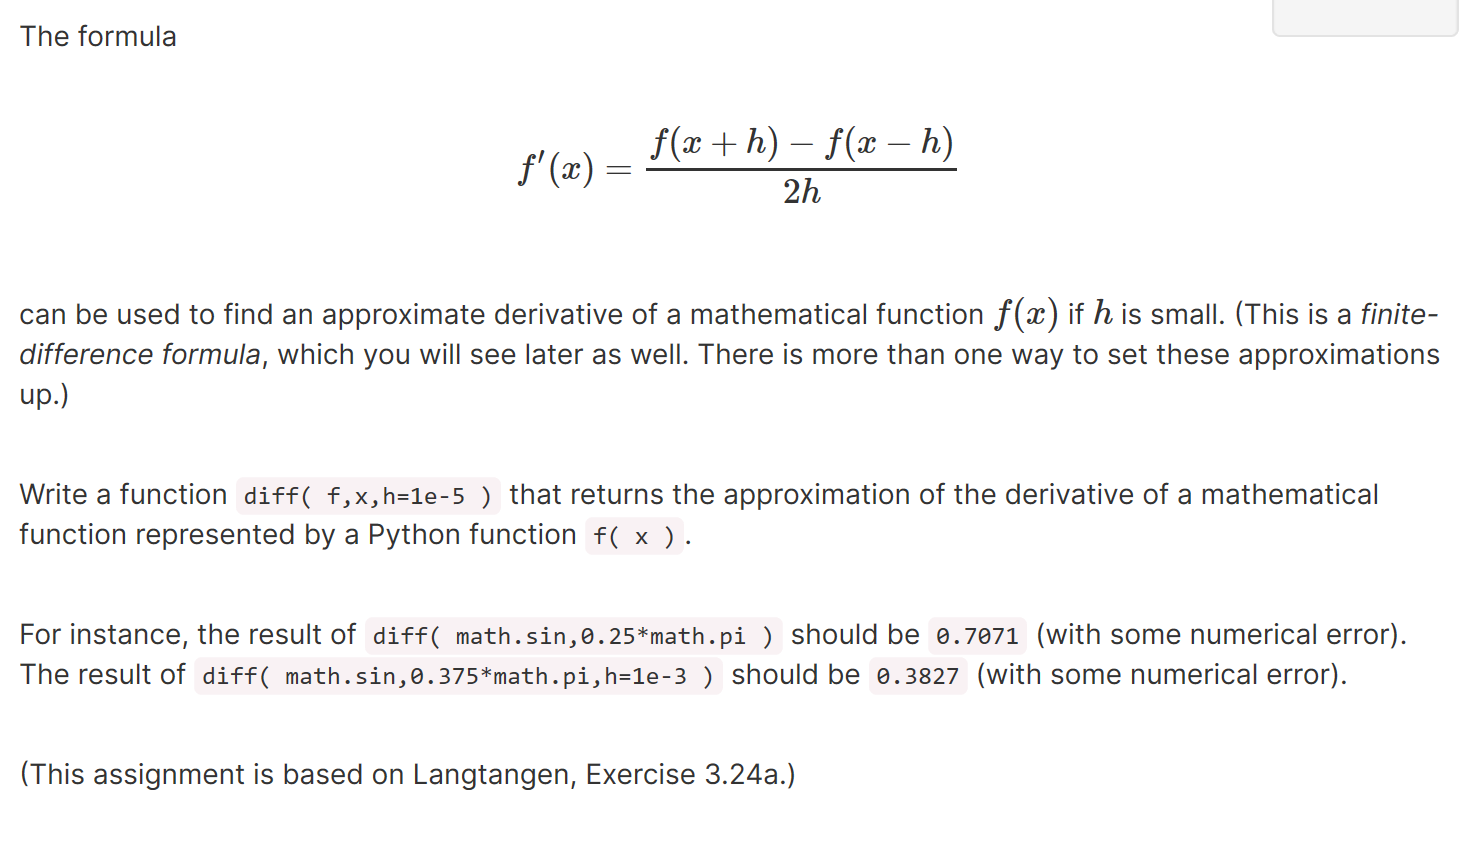 The formula f(x) = f(x + h) – f(x – h) - 2h can be used to find an approximate derivative of a mathematical function f(x) if